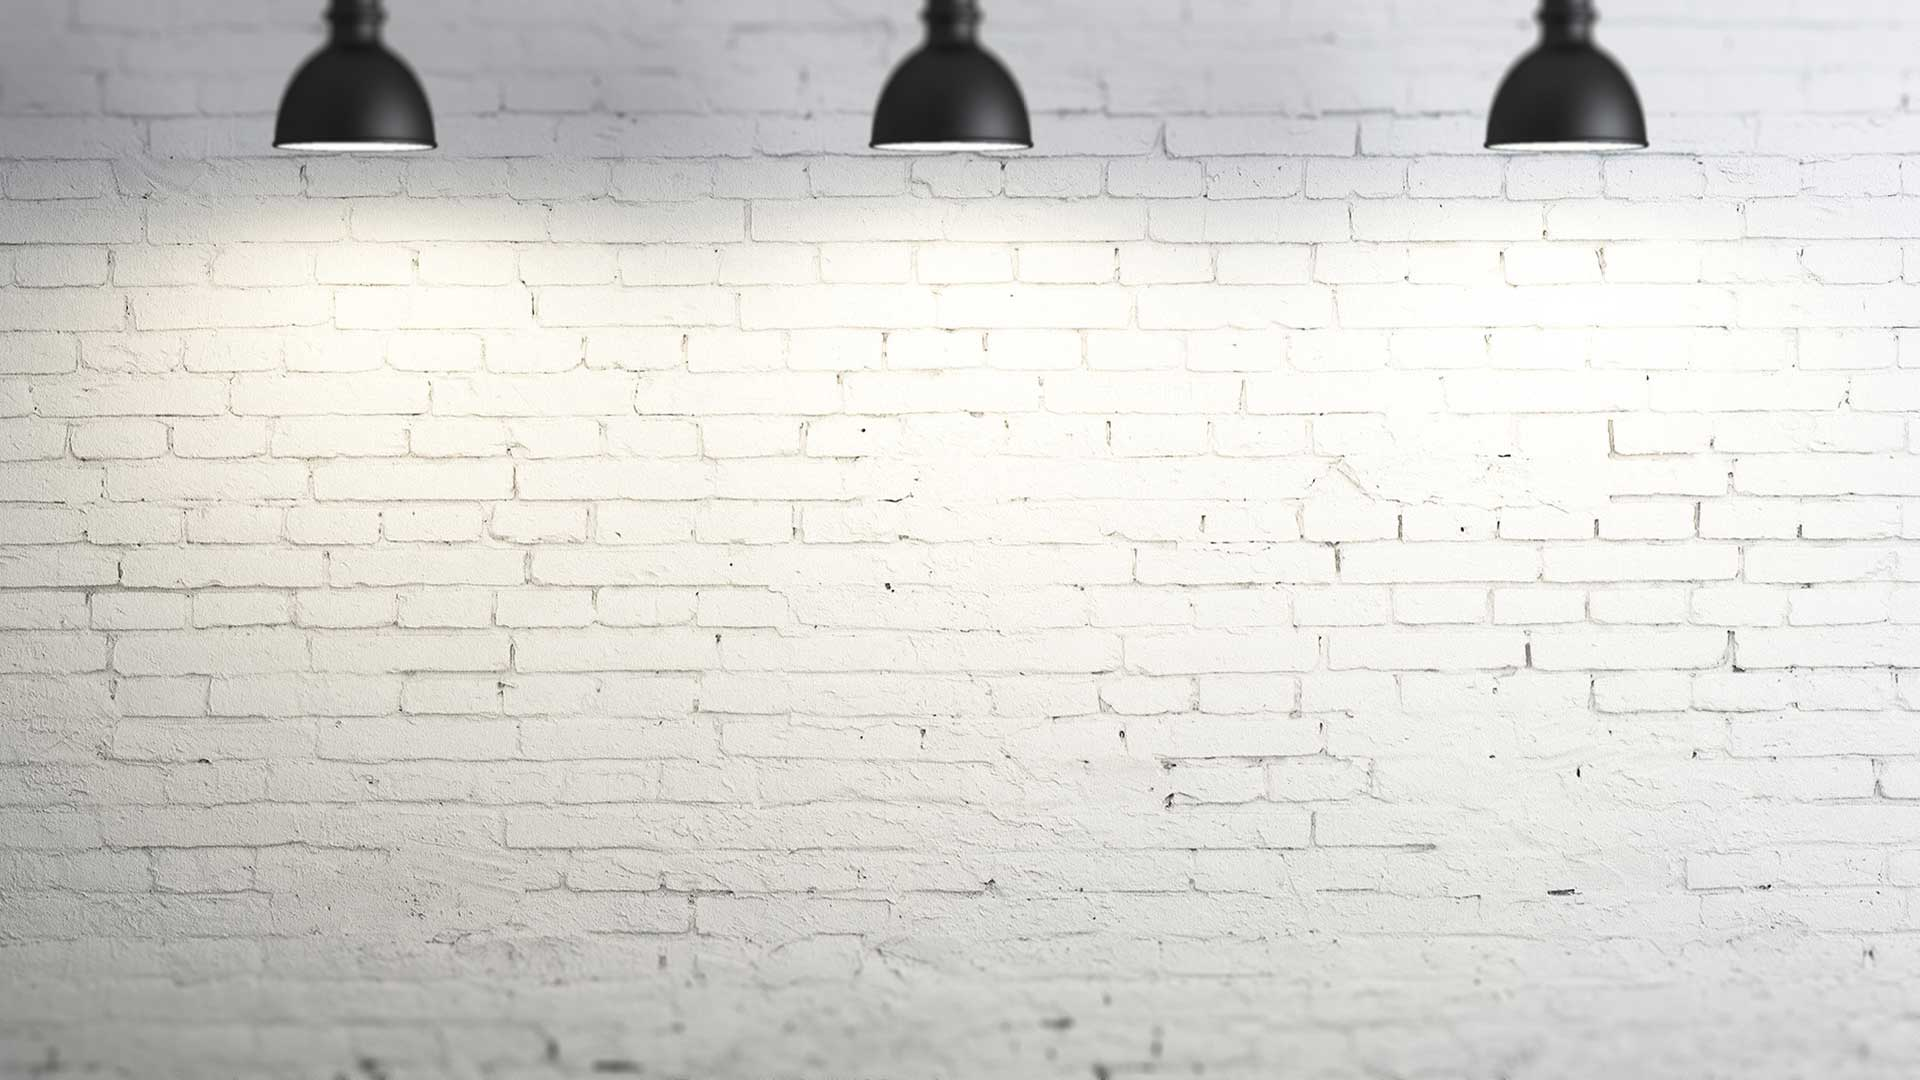 Wall bricks in light blur background